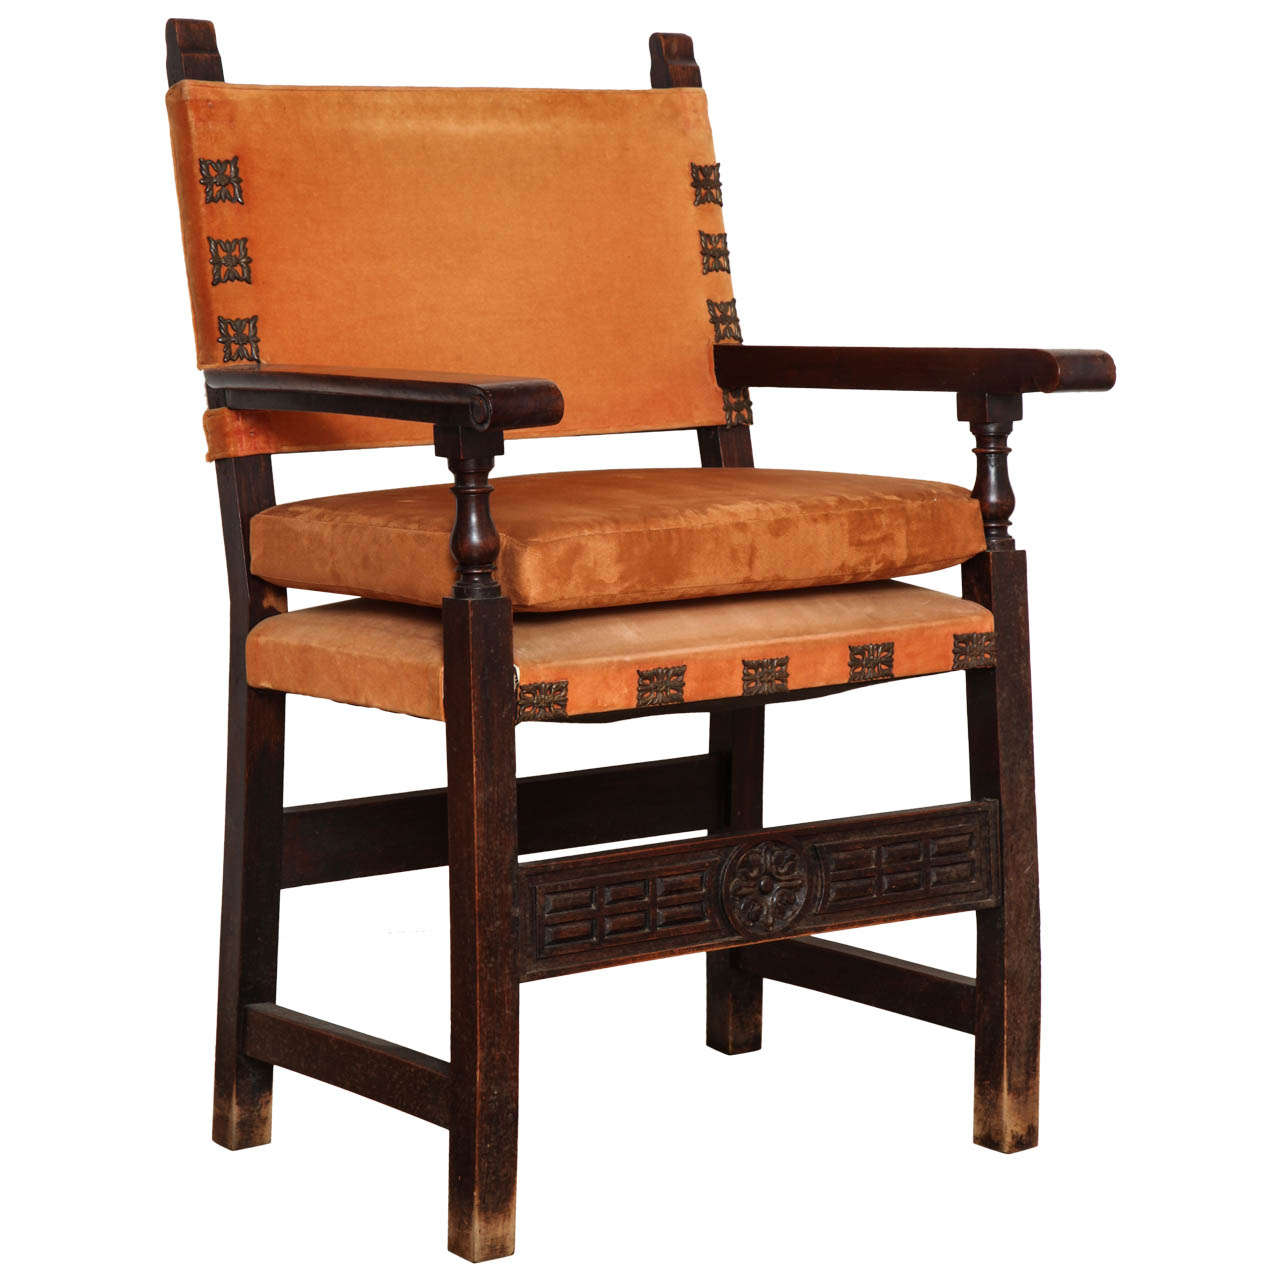 Spanish baroque oak open armchair at 1stdibs for Spanish baroque furniture